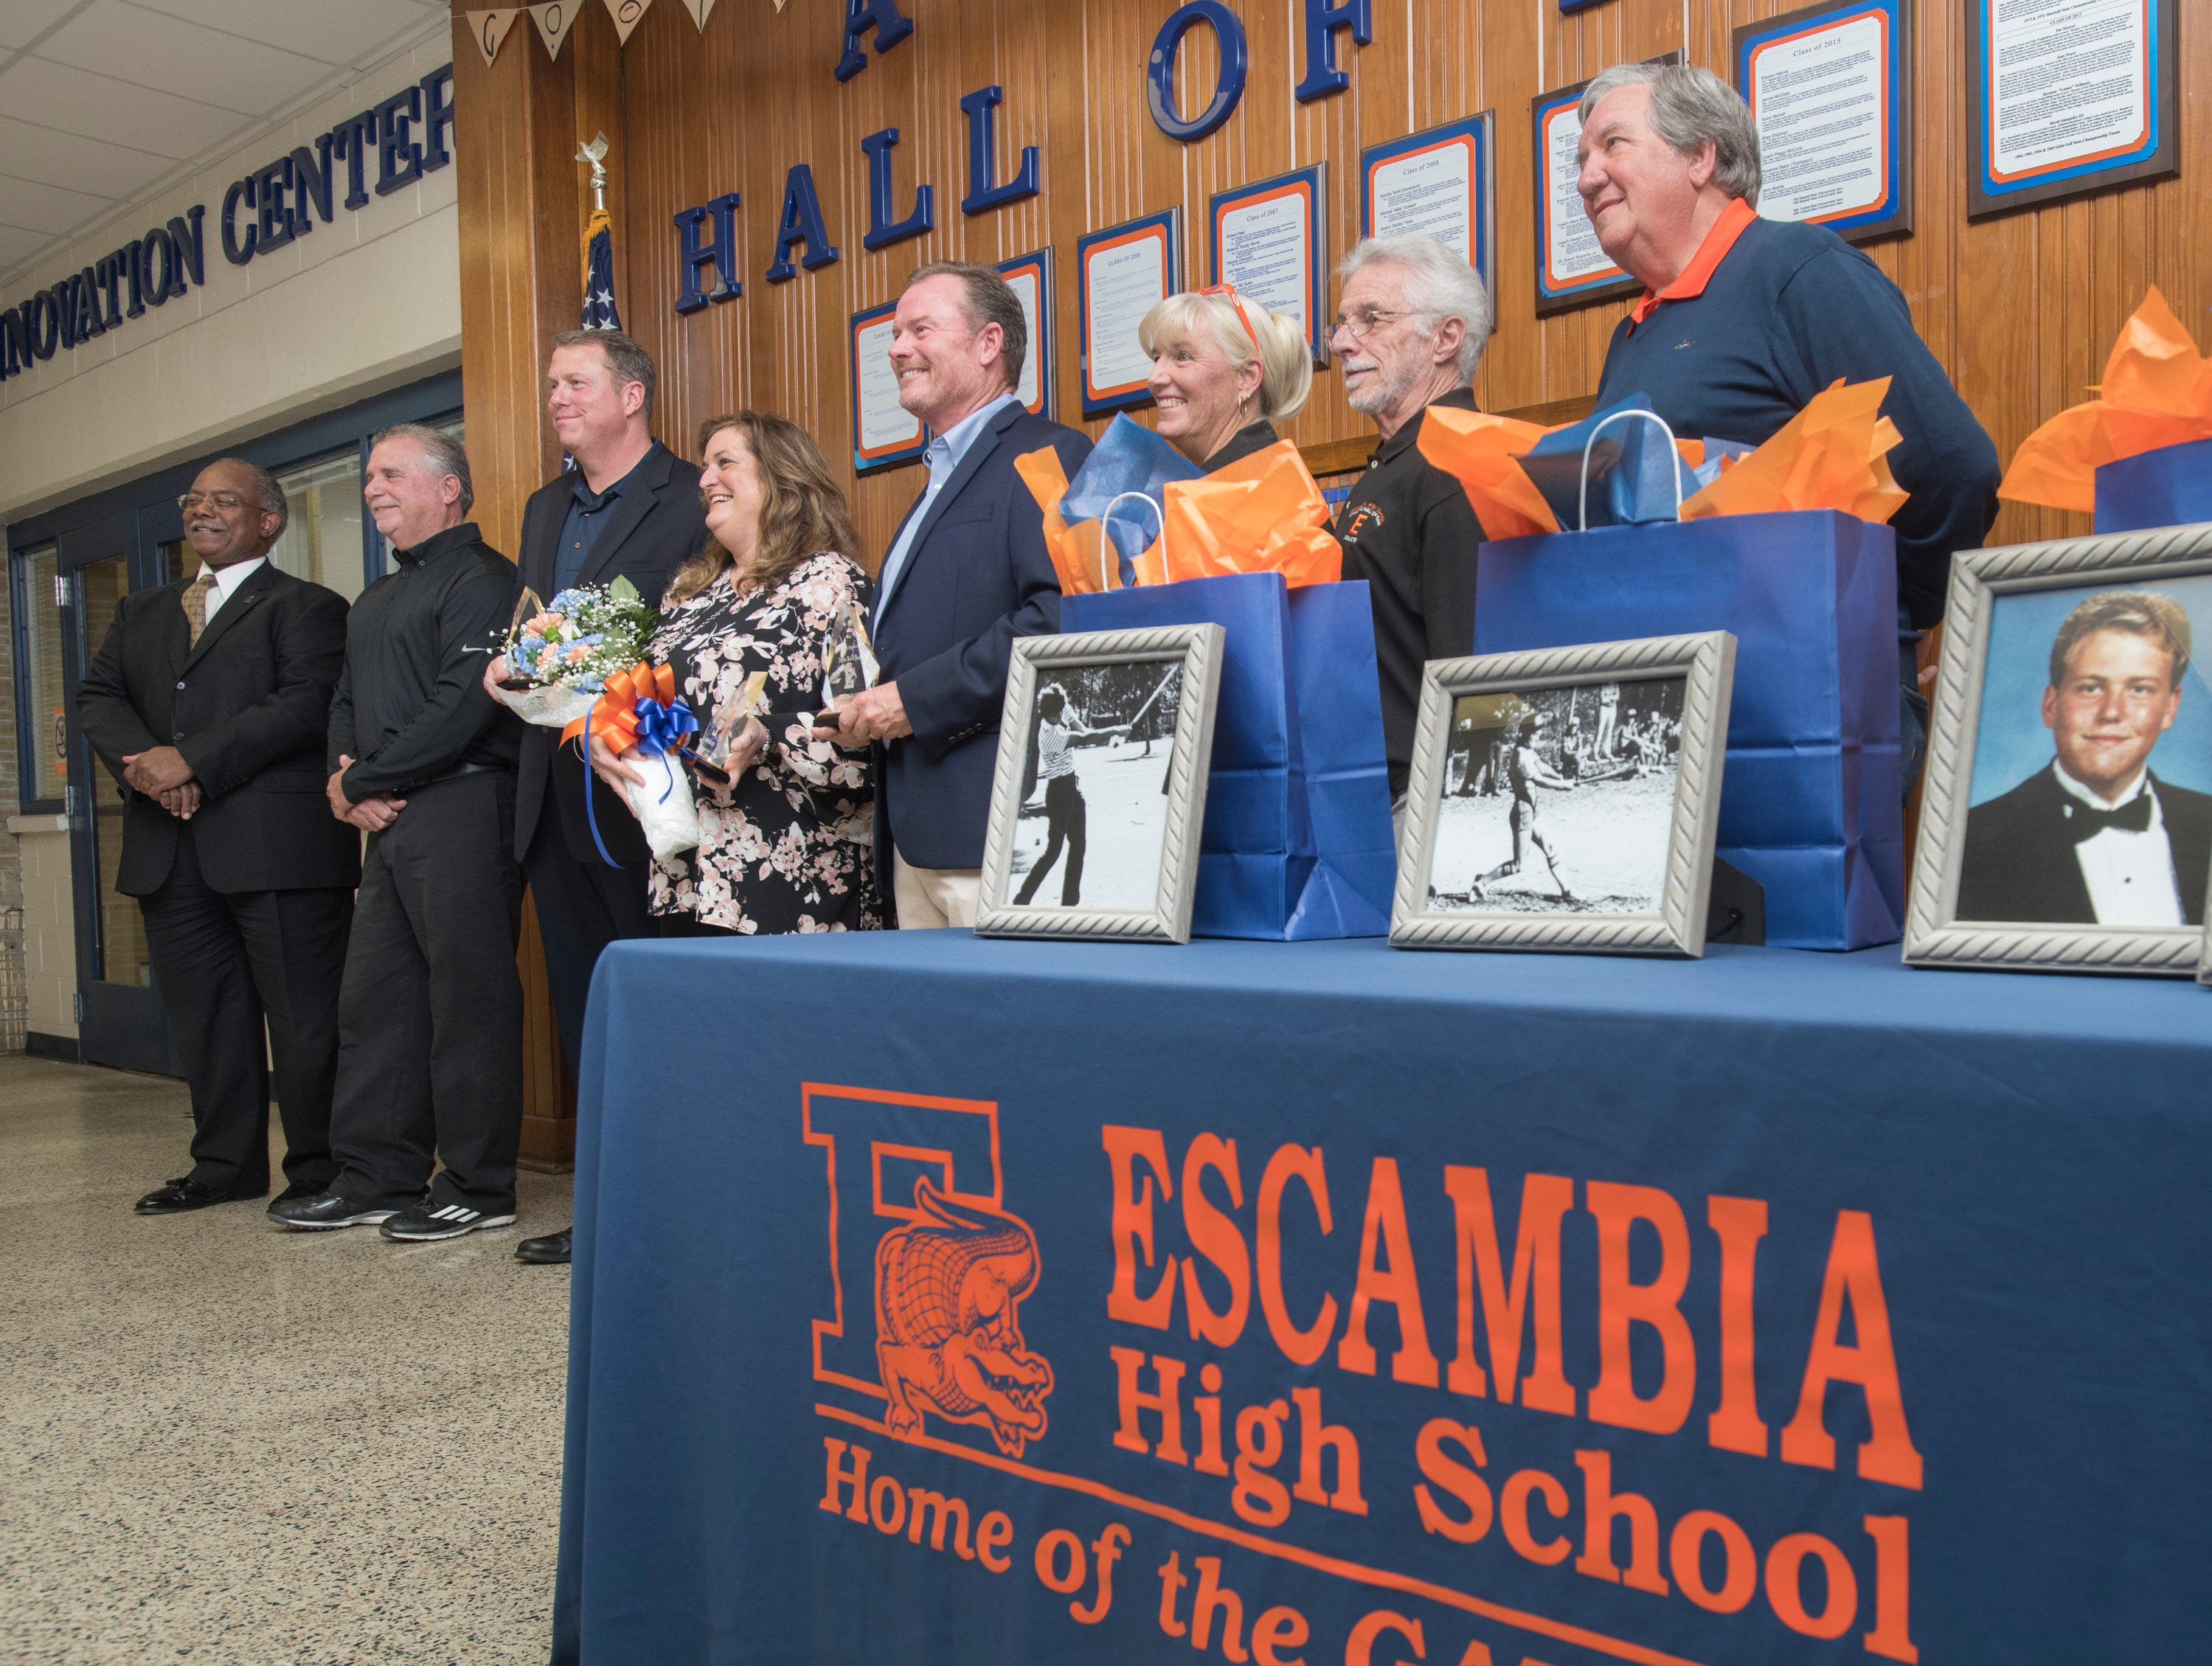 New and previous Hall of Fame inductees pose at Escambia High School in Pensacola on March 14, 2019.